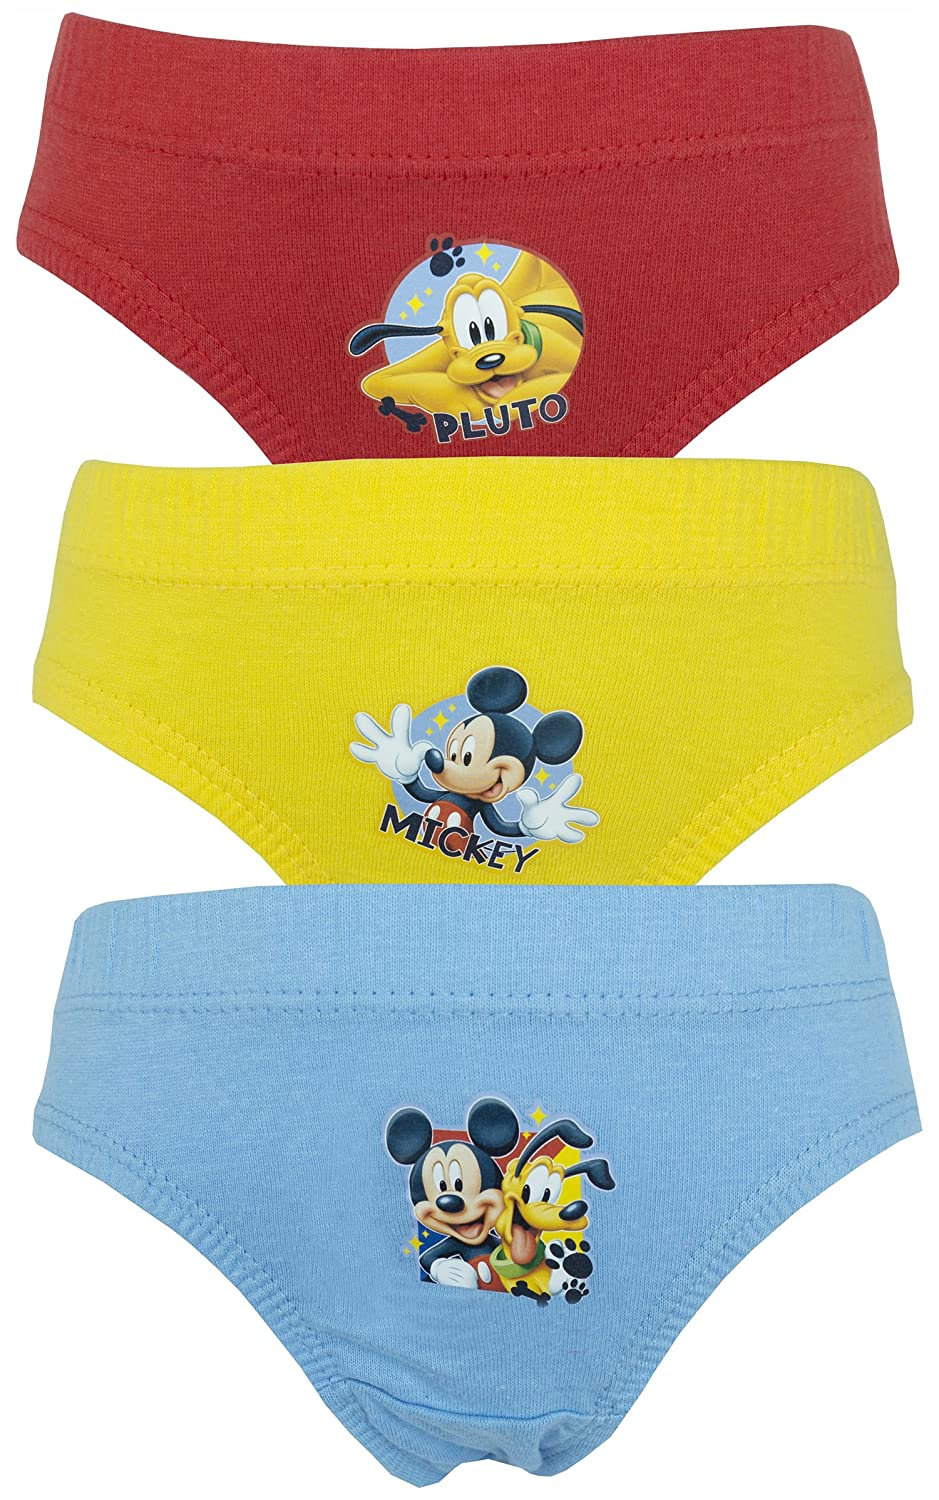 Disney Mickey Mouse & Pluto Boys 3 Pack Pants / Knickers